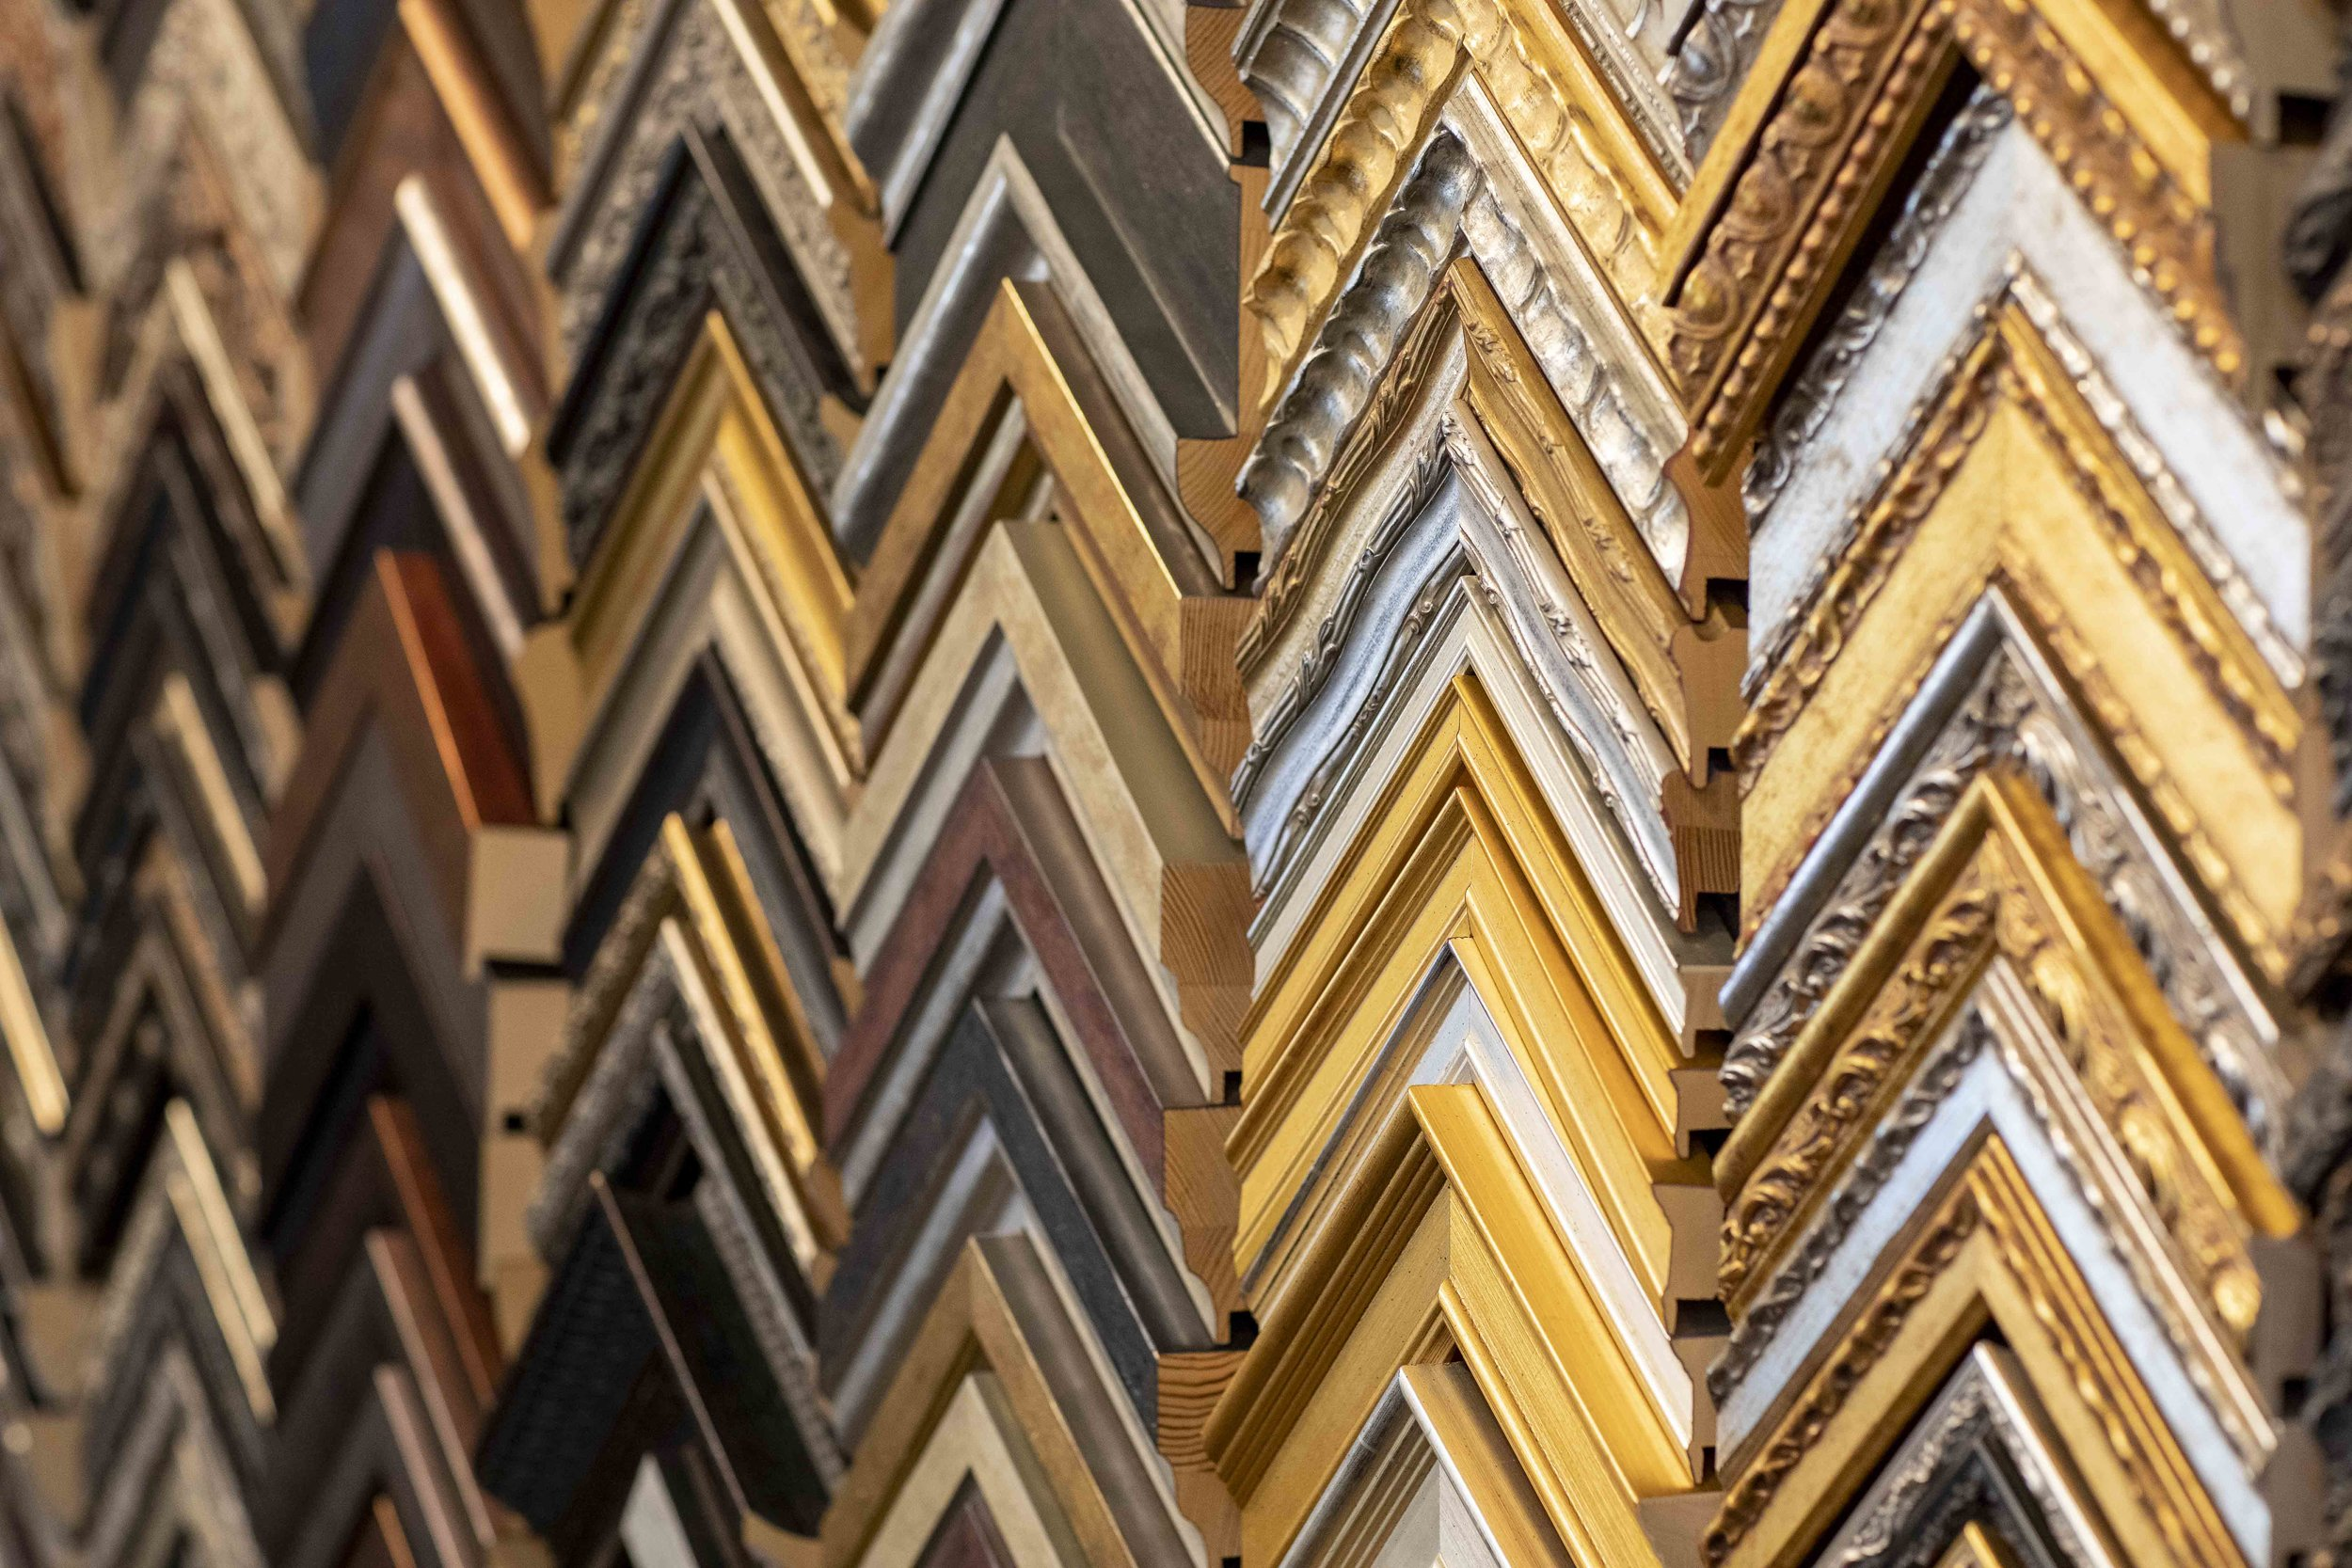 ornate frames shop pics small jpg.jpg